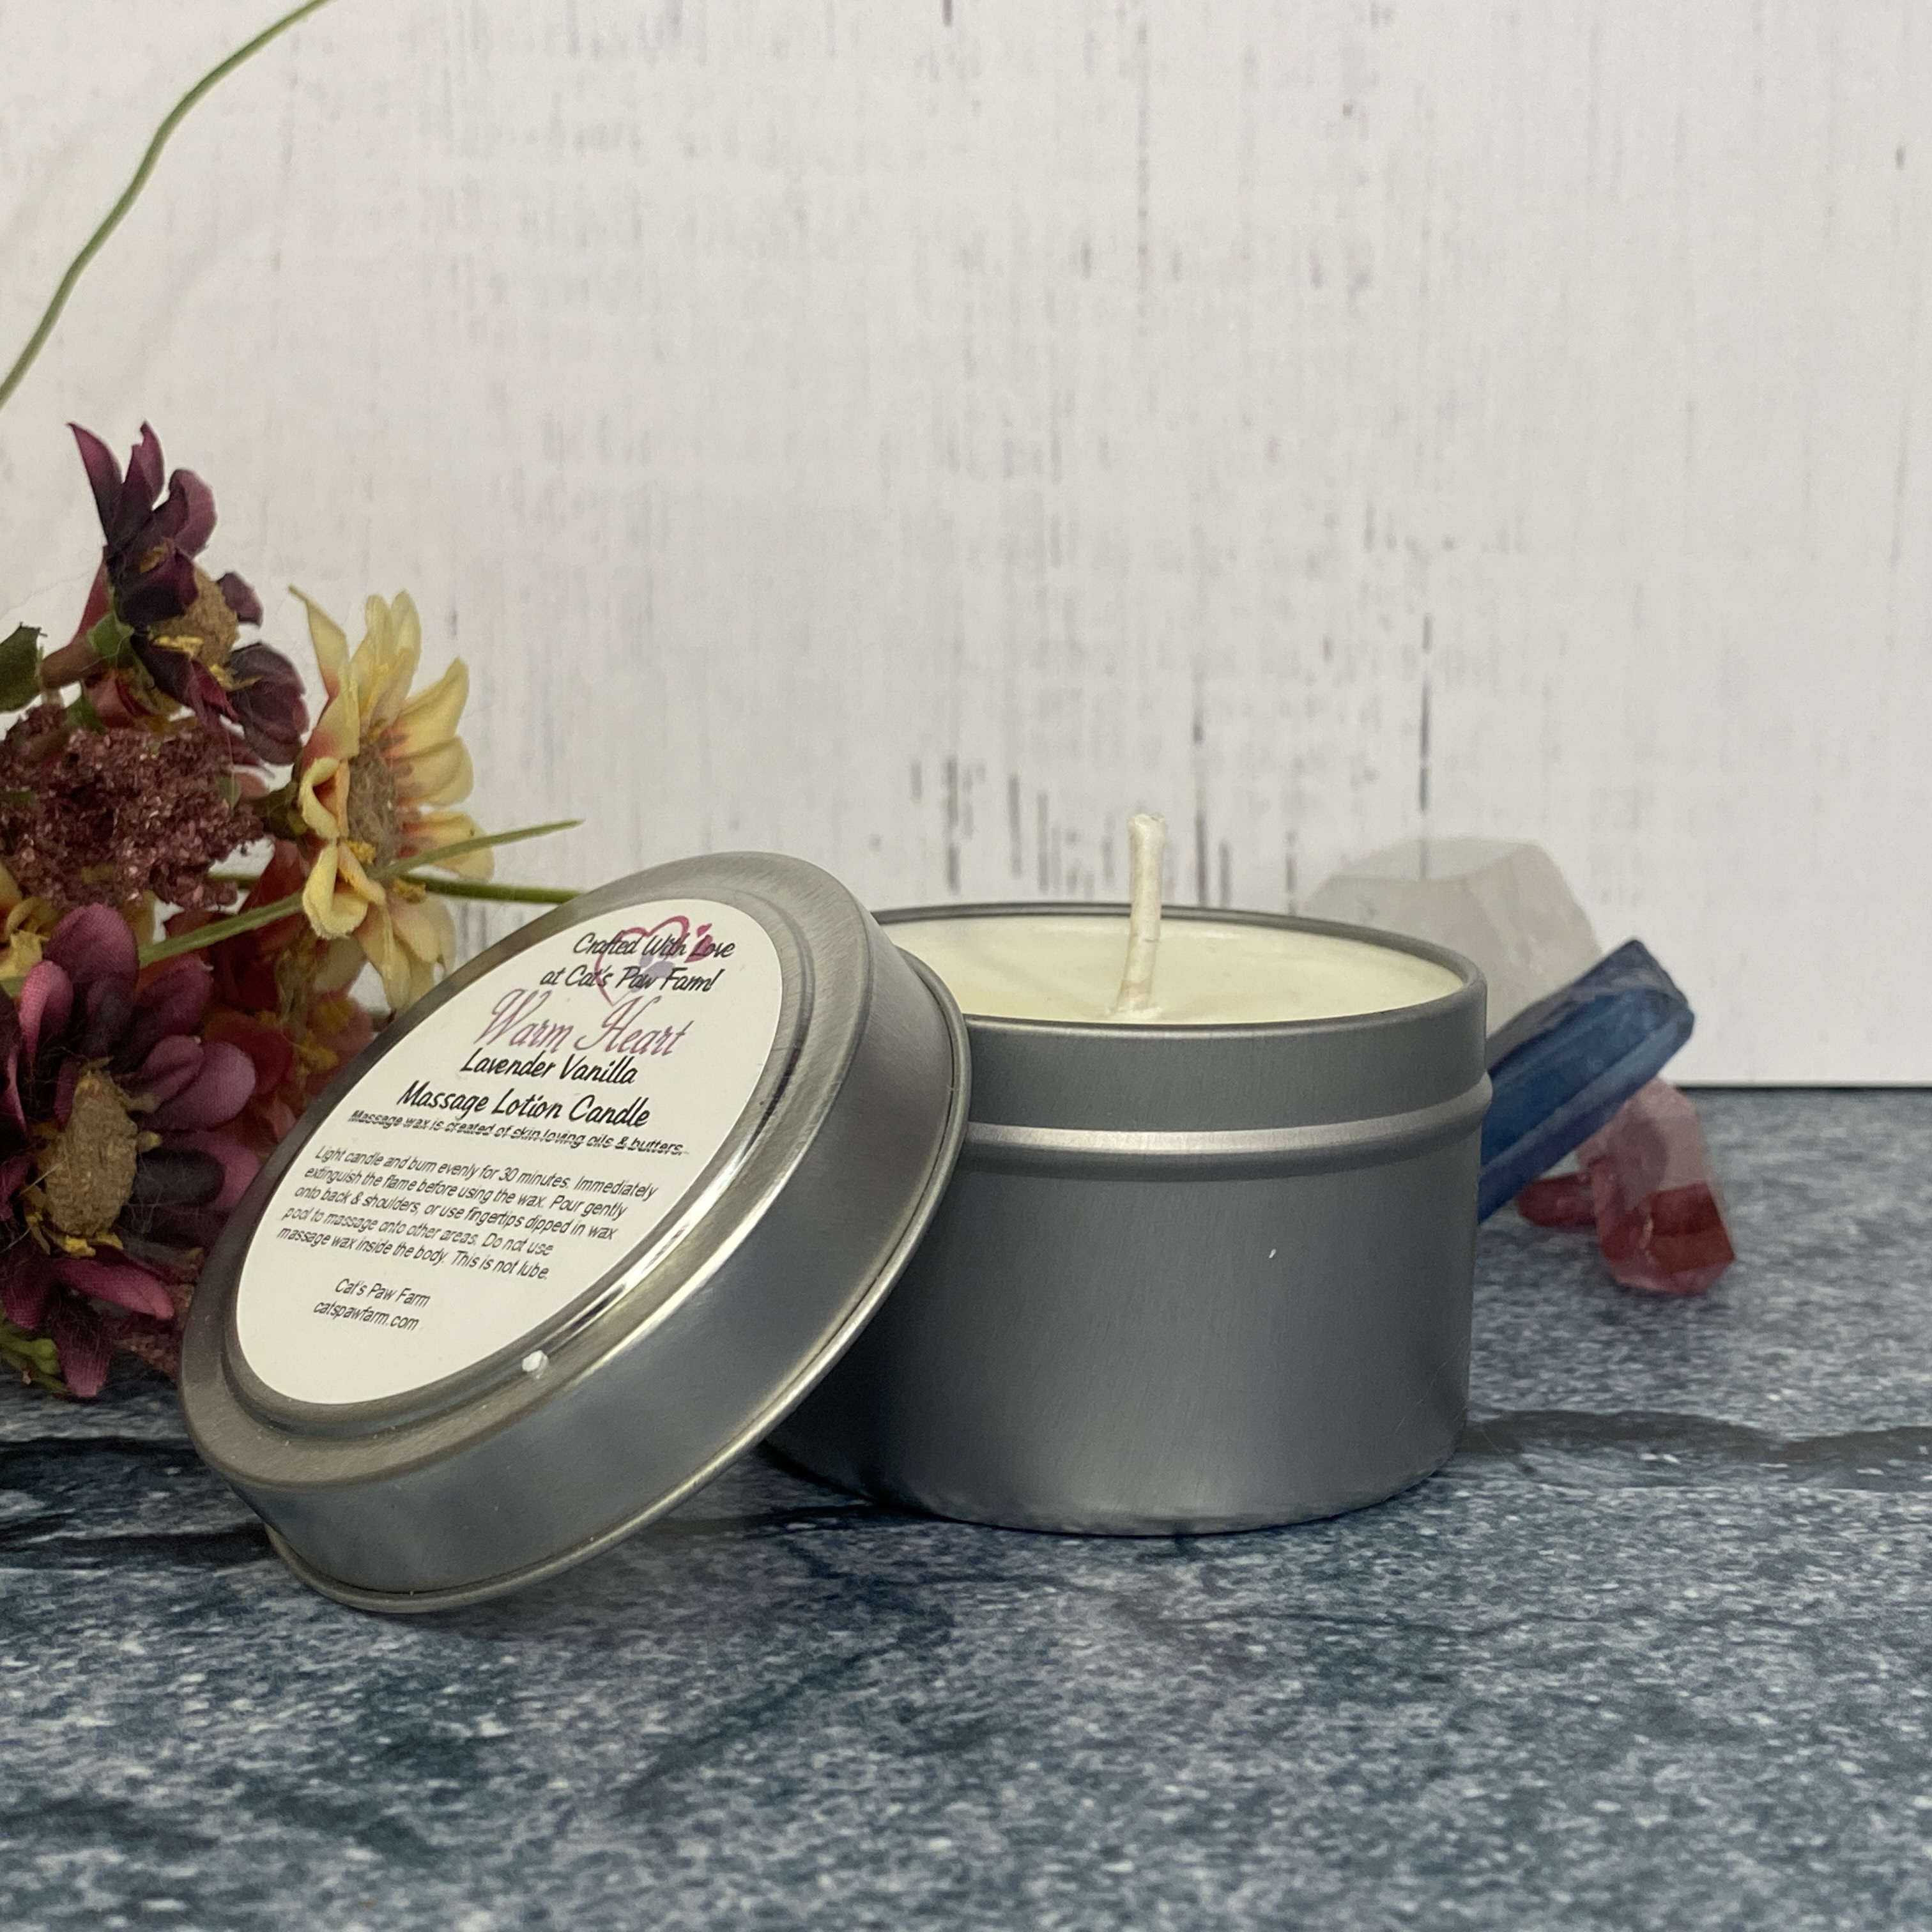 Warm Heart Massage Lotion Candle - Lavender Vanilla